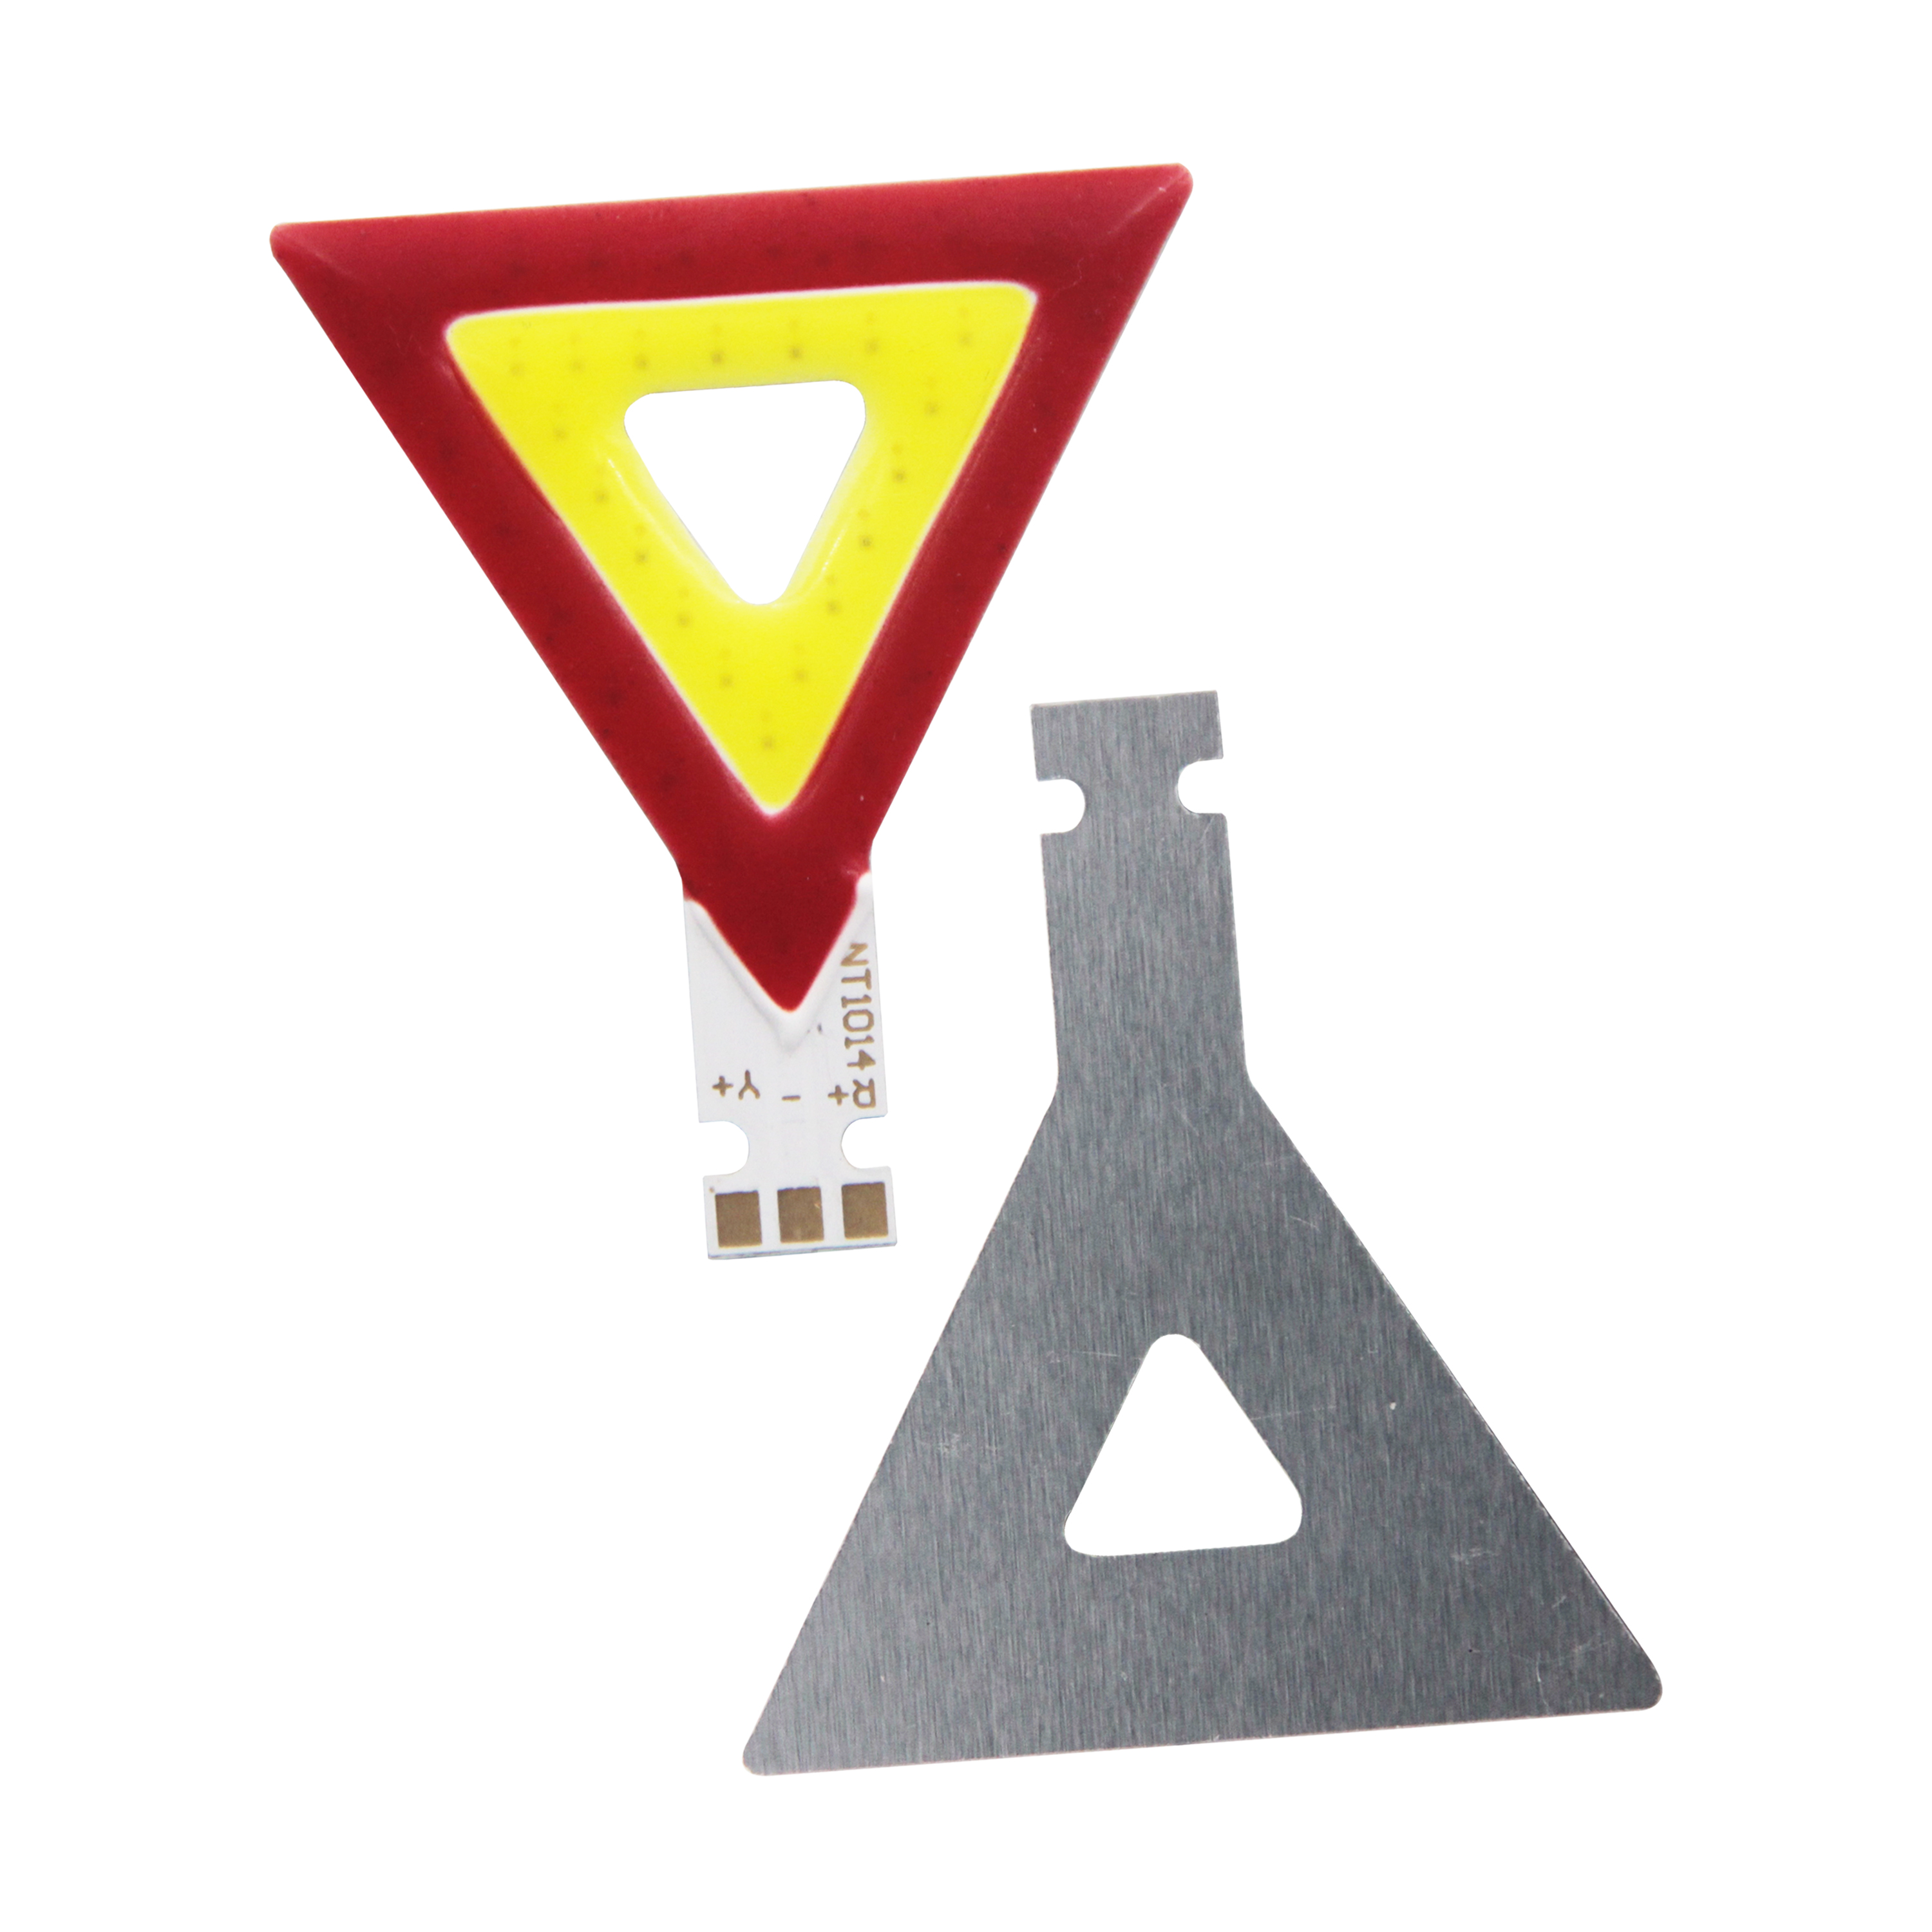 2W Triangle COB LED Panel Strip Light 44*36*36mm DC 3V 600mA Red Yellow